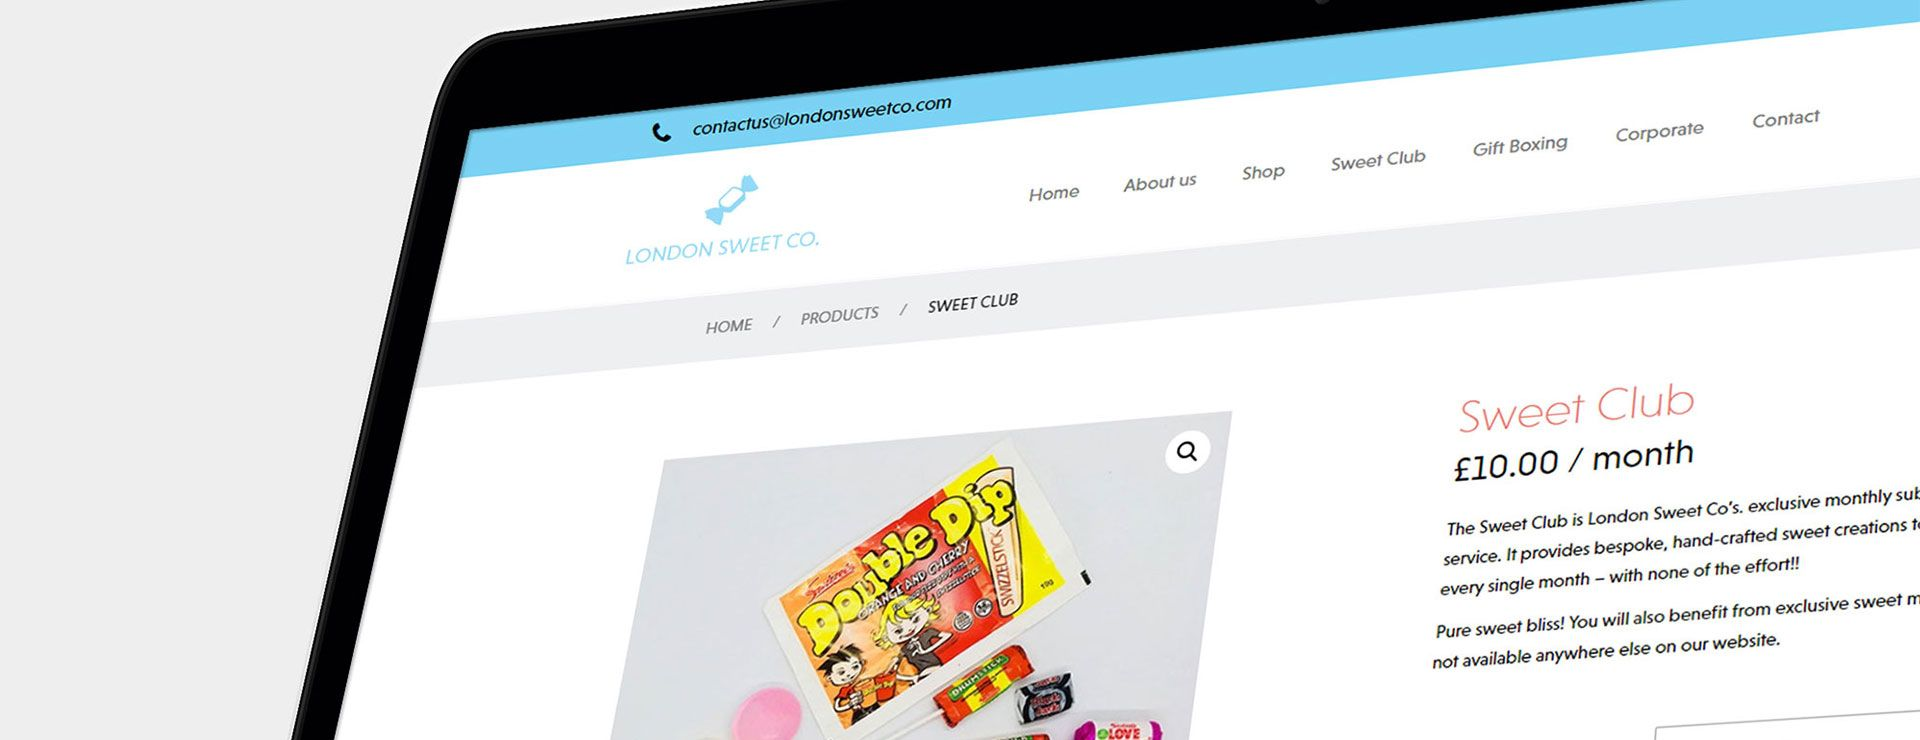 London Sweet Co. Website